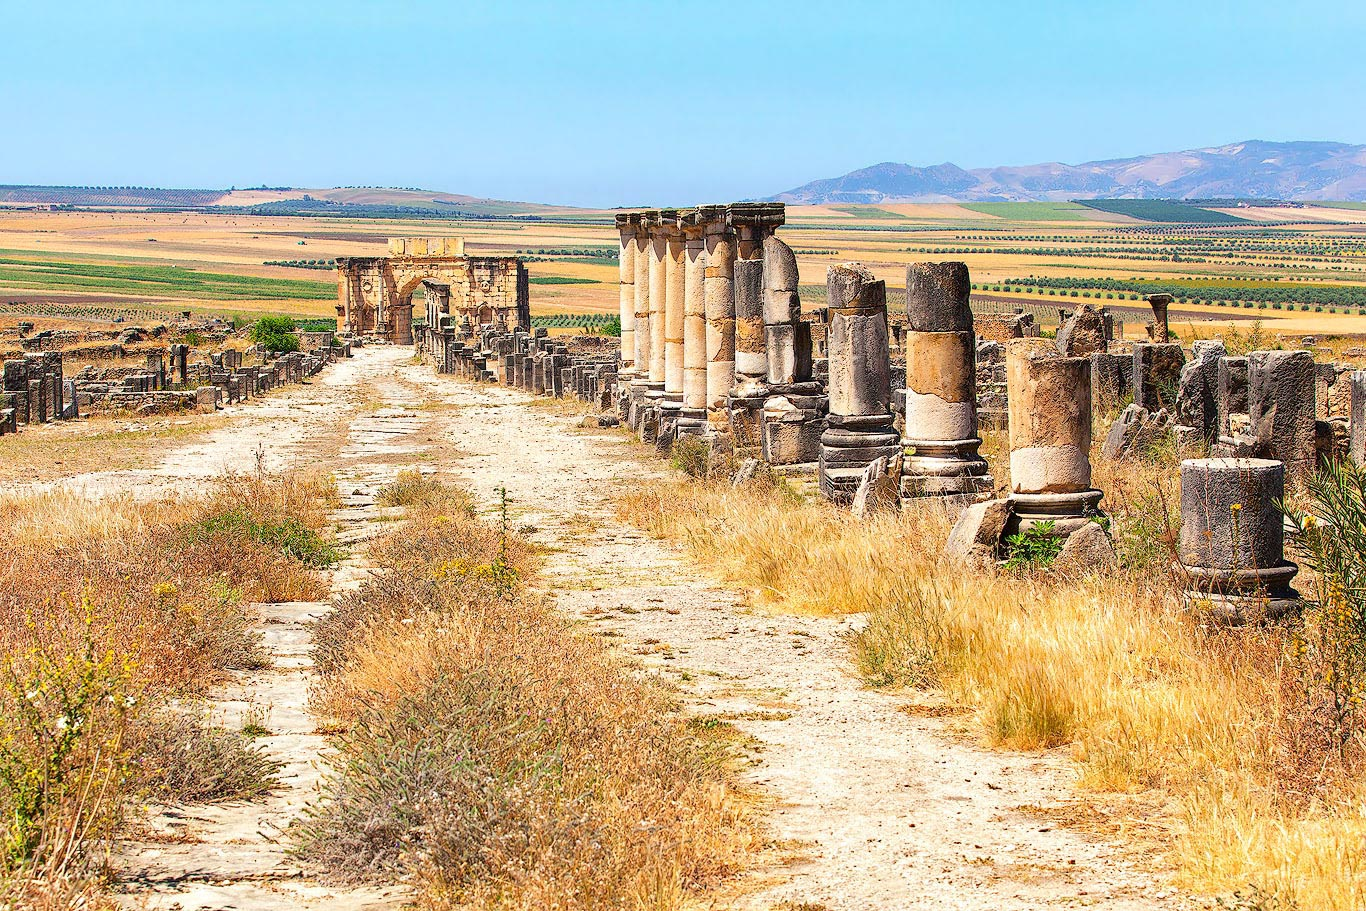 The ruins of Volubilis in Morocco